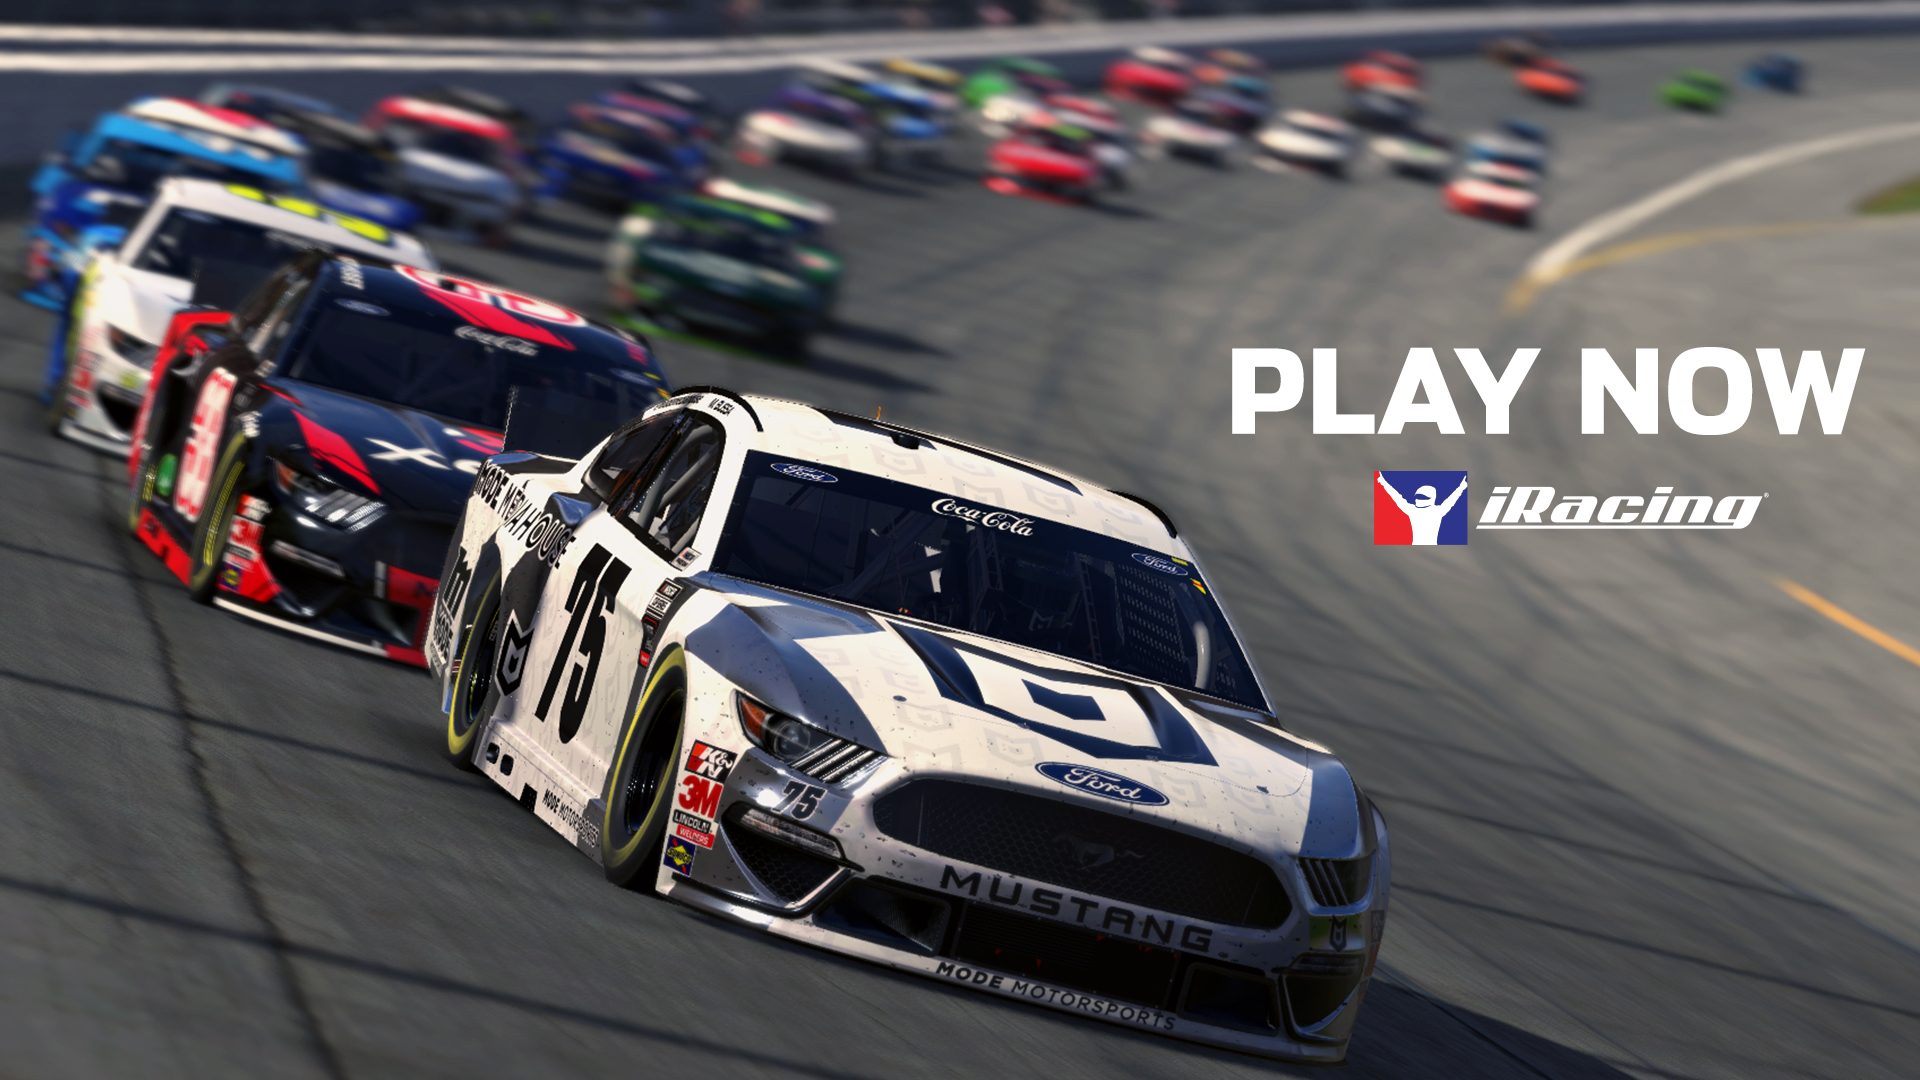 Iracing Play Now Enascar Home 2021